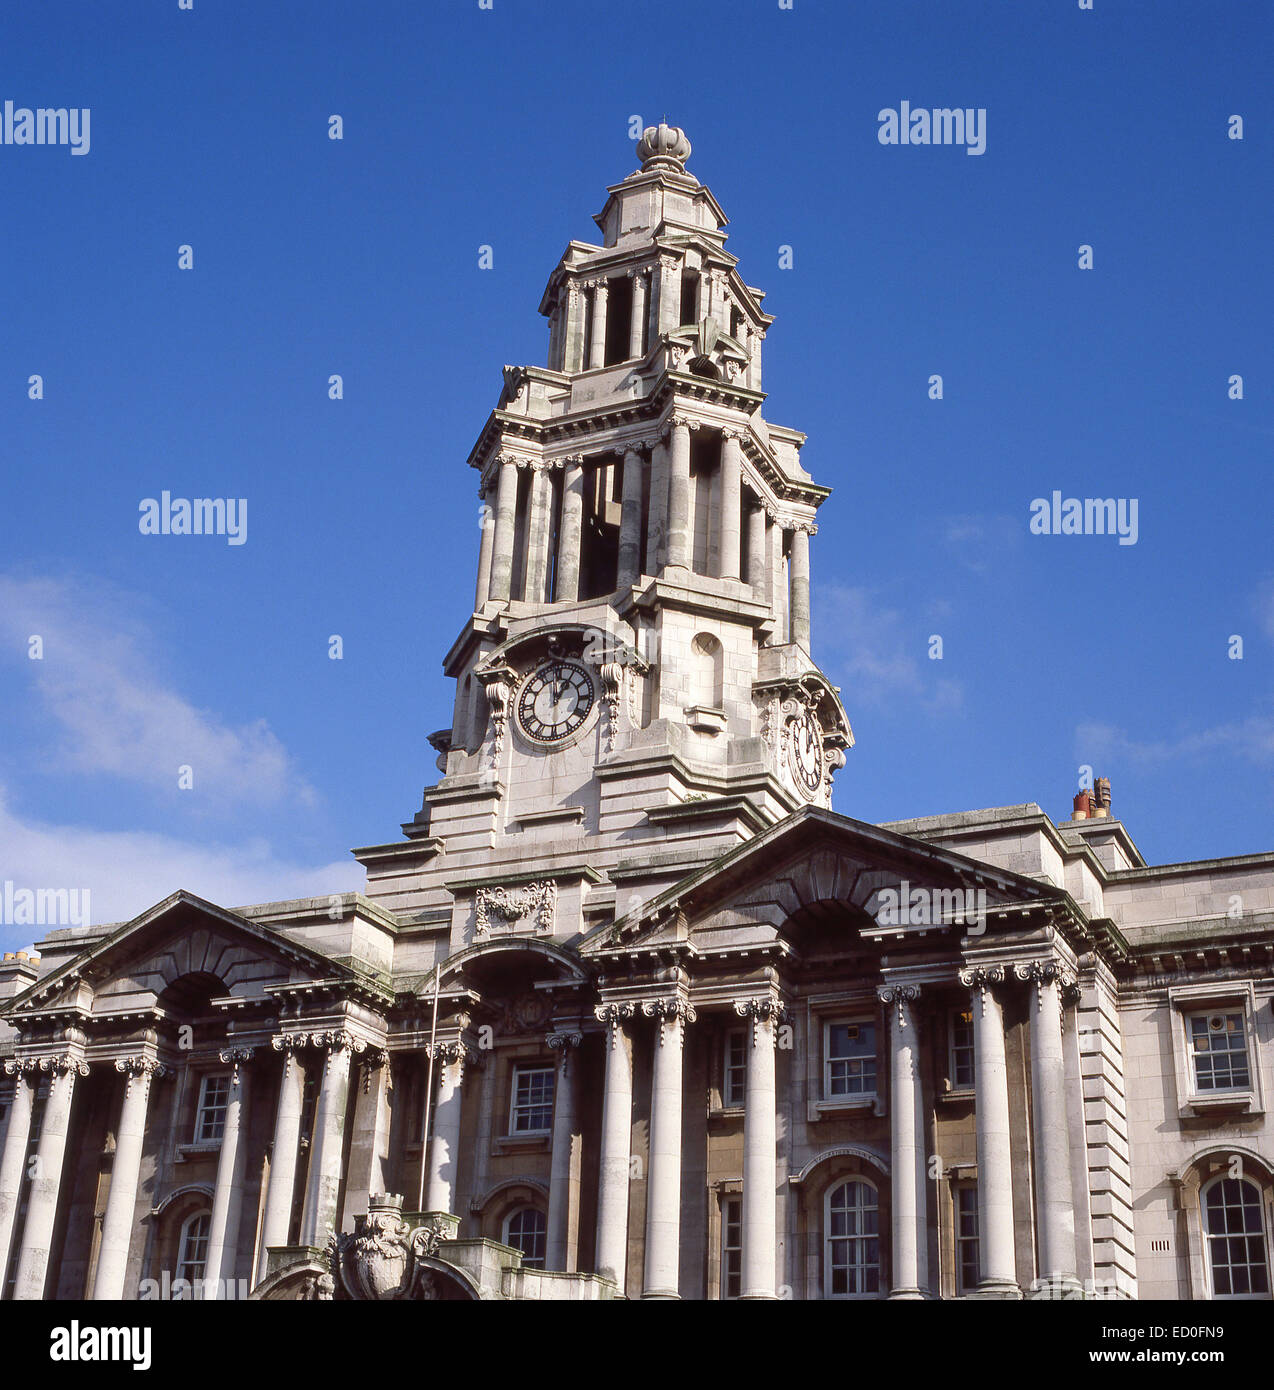 Stockport Town Hall, Stockport, Metropolitan Borough of Stockport, Greater Manchester, England, United Kingdom - Stock Image